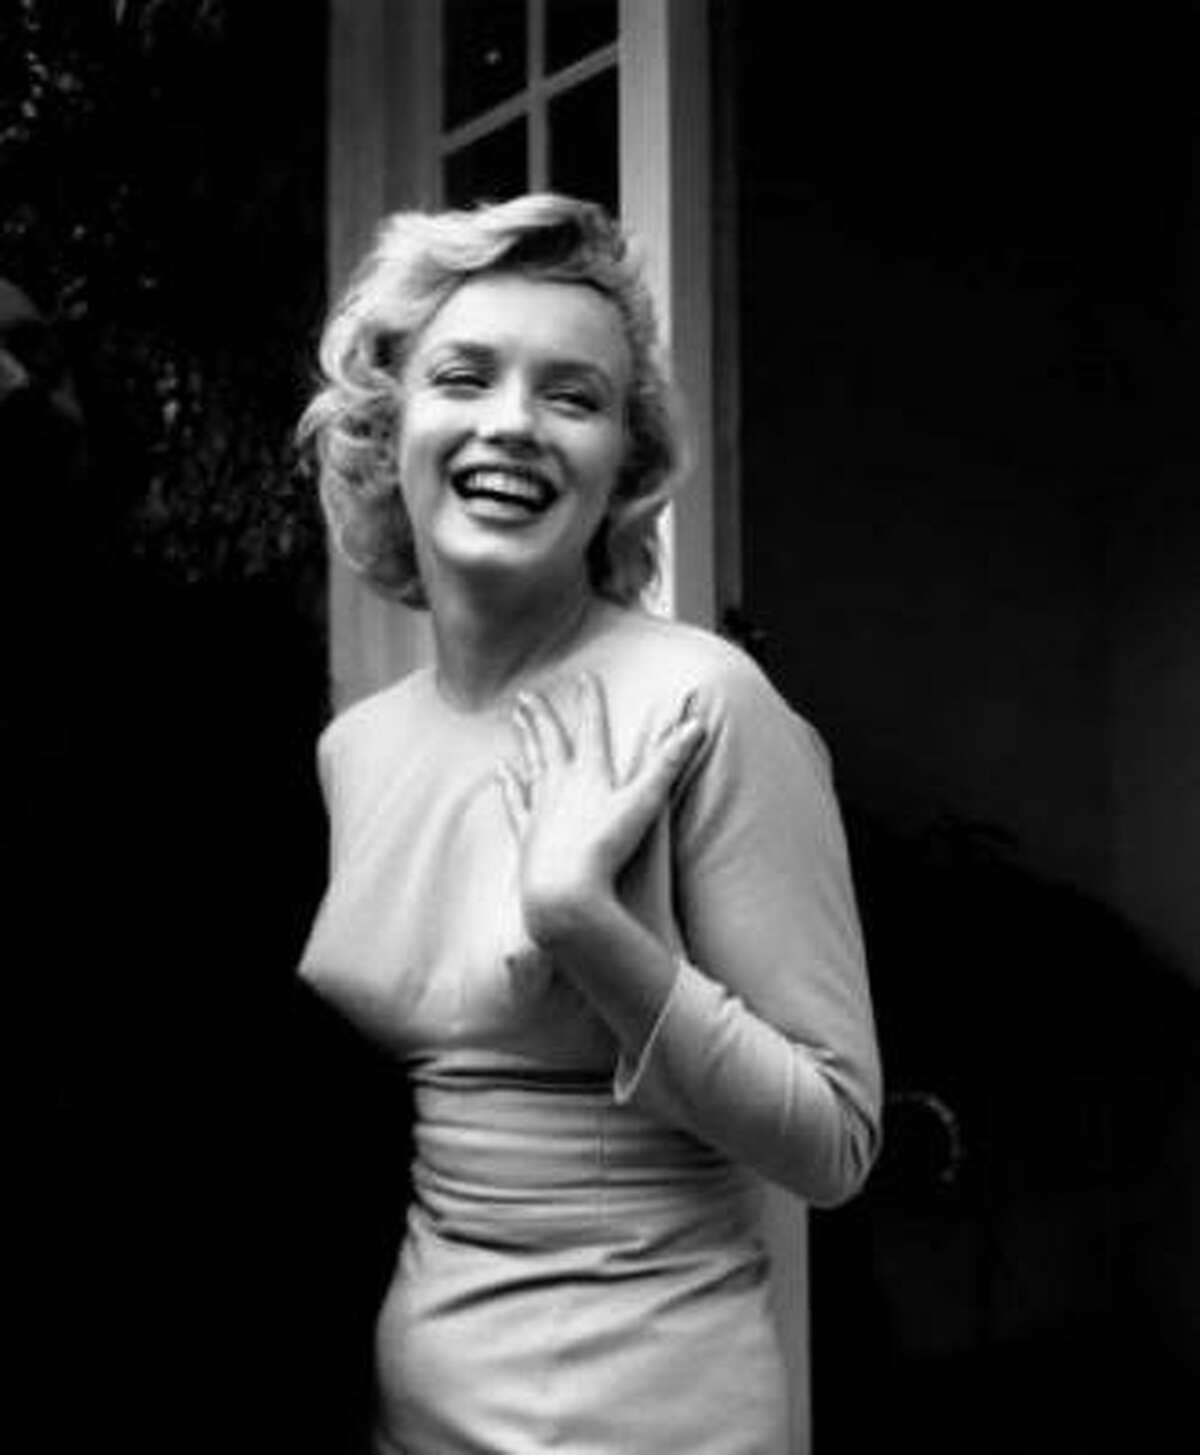 Monroe outside her home at Englefield Green, England on July 17, 1956.